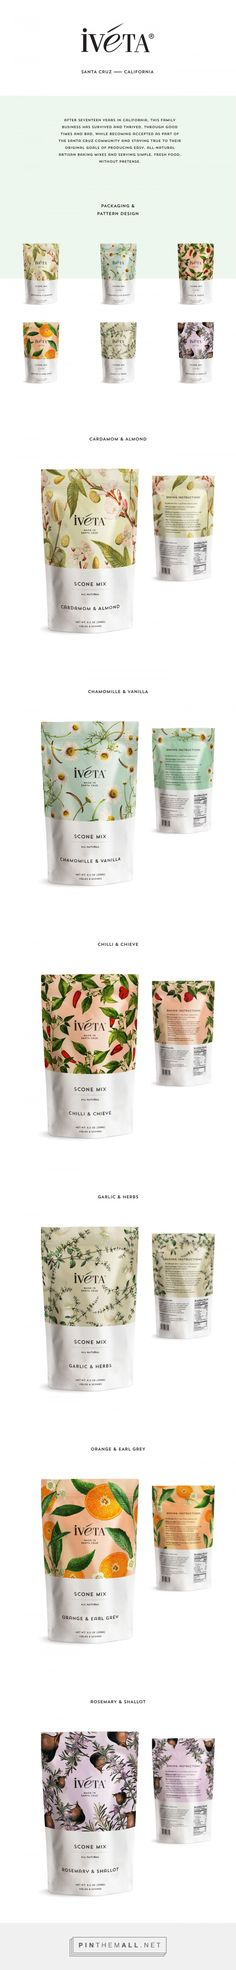 IVETA Scone Mix Packaging by Alvarez Juana | Fivestar Branding Agency – Design and Branding Agency & Curated Inspiration Gallery